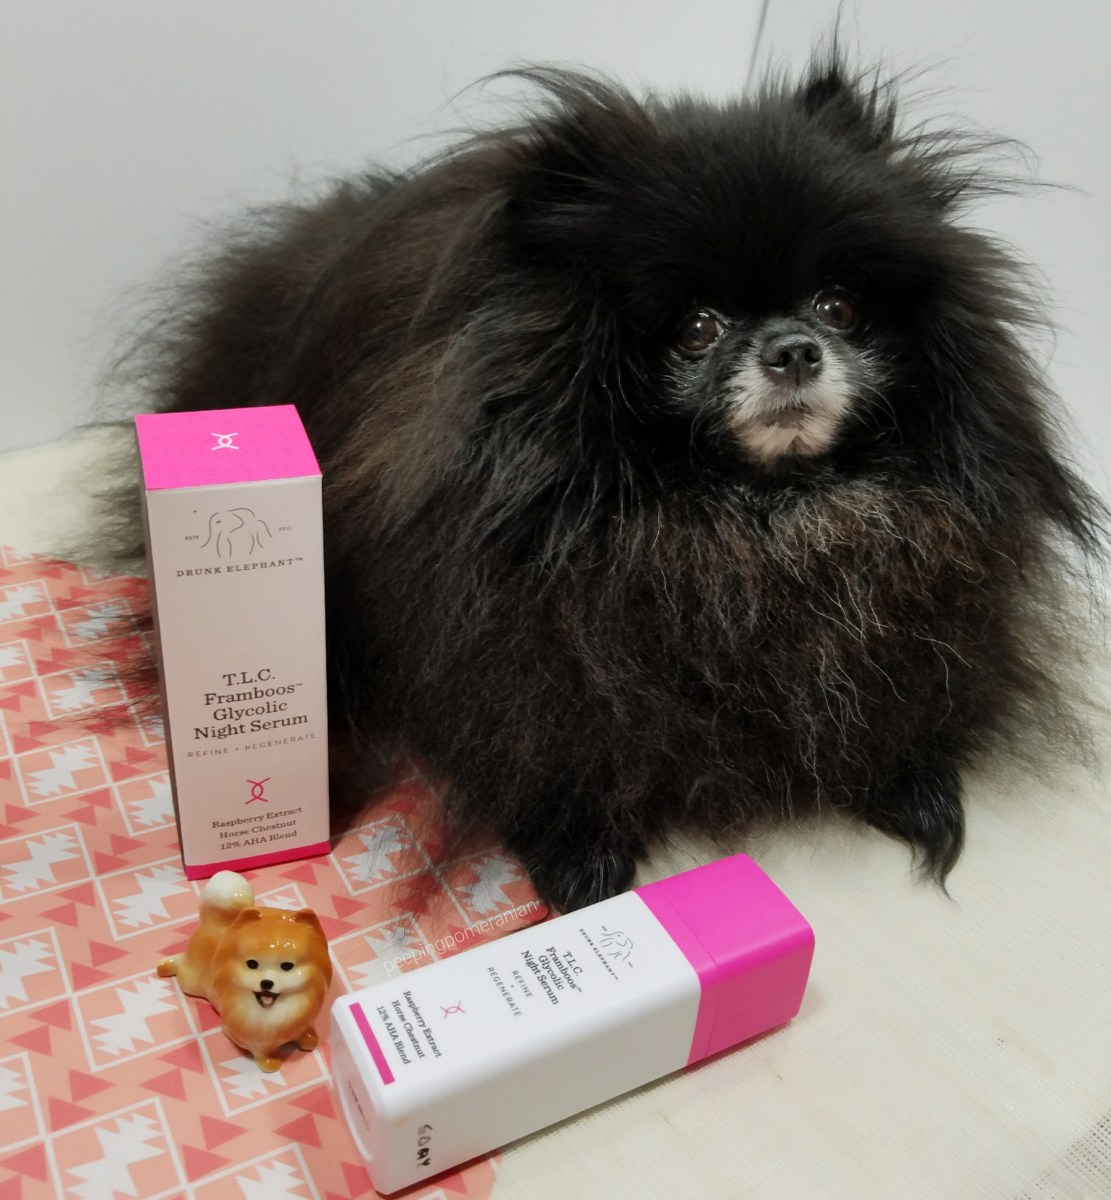 AHA Exfoliation: a Drunk Elephant T.L.C. Framboos Glycolic Night Serum Review